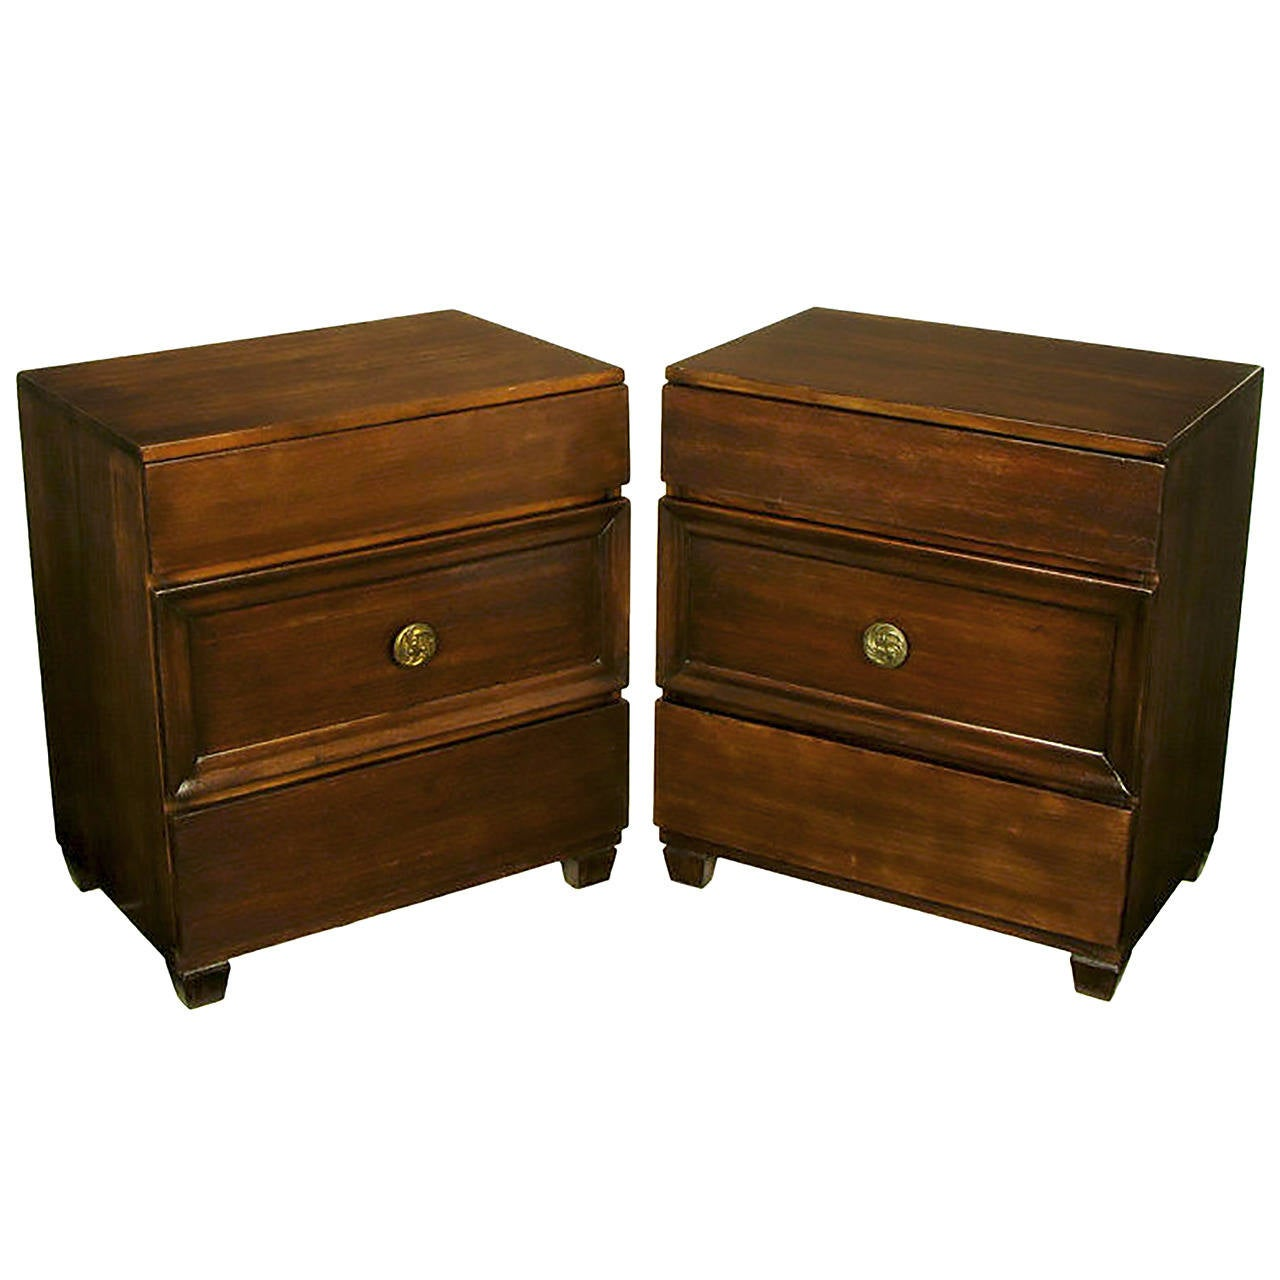 Pair of Lacquer Glazed Dark Mahogany Three-Drawer Commodes